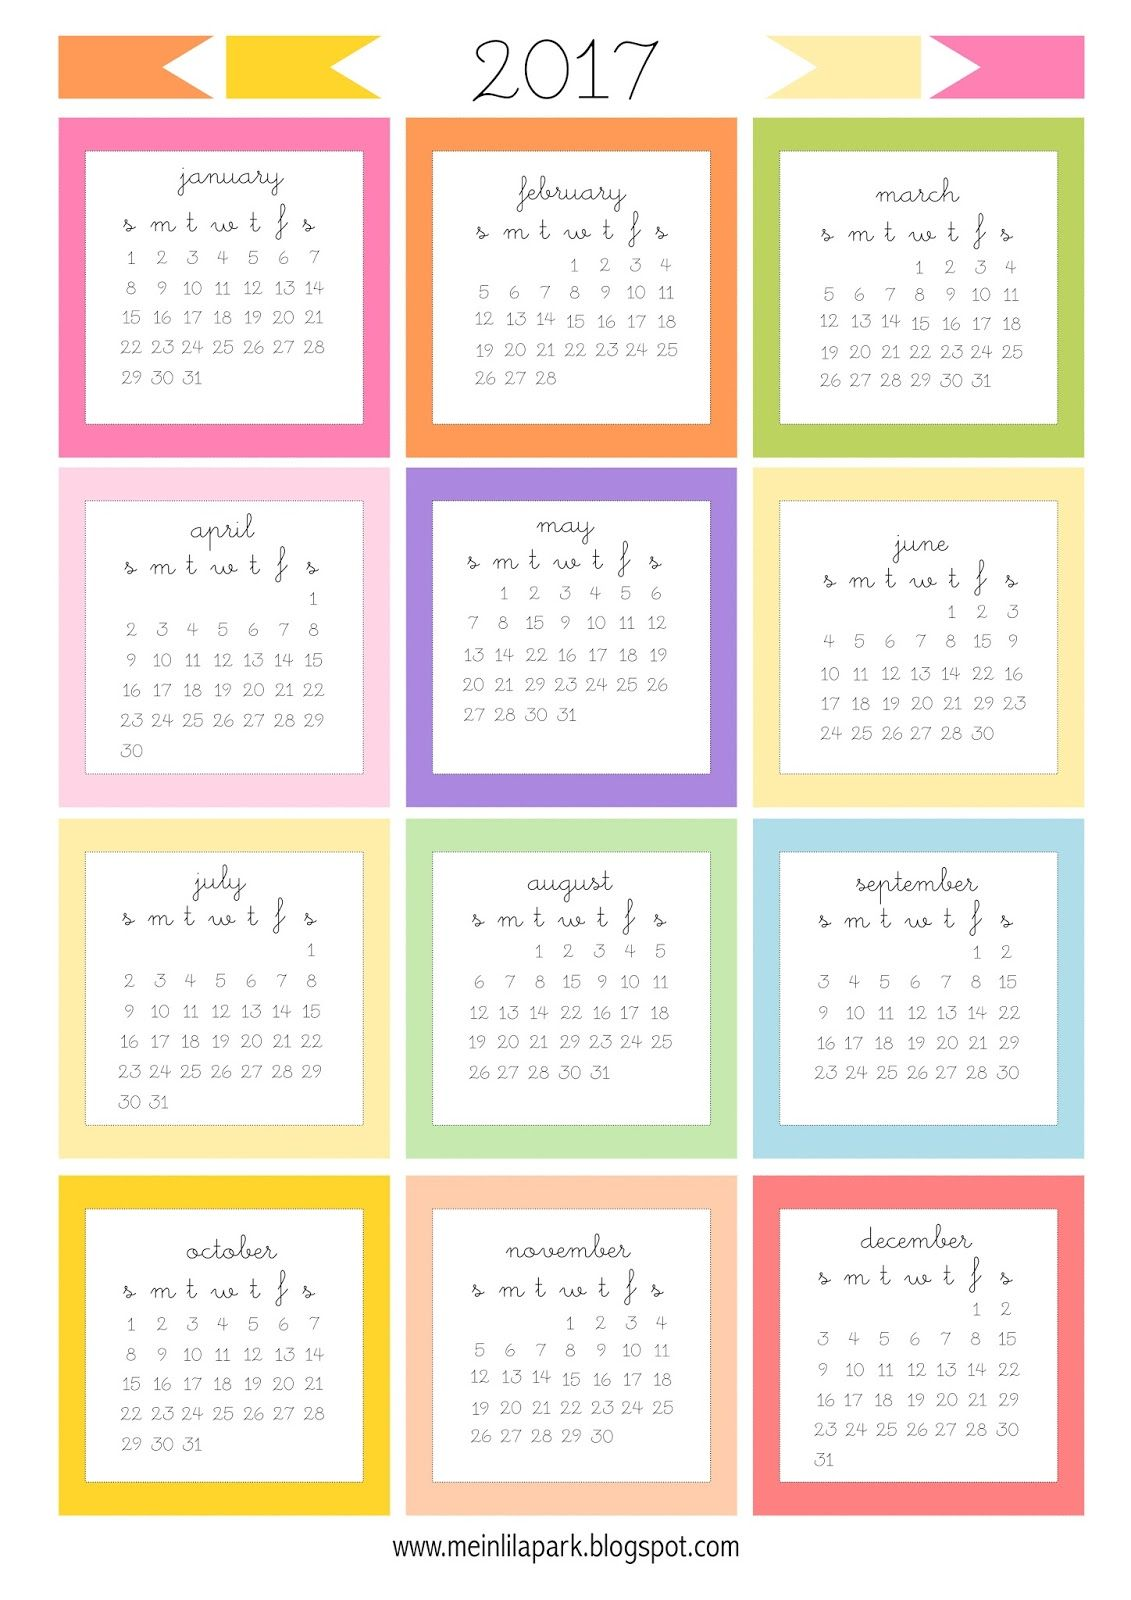 Today I Created Free Printable Calendar With Each Month As A Mini Card For You The Monthly